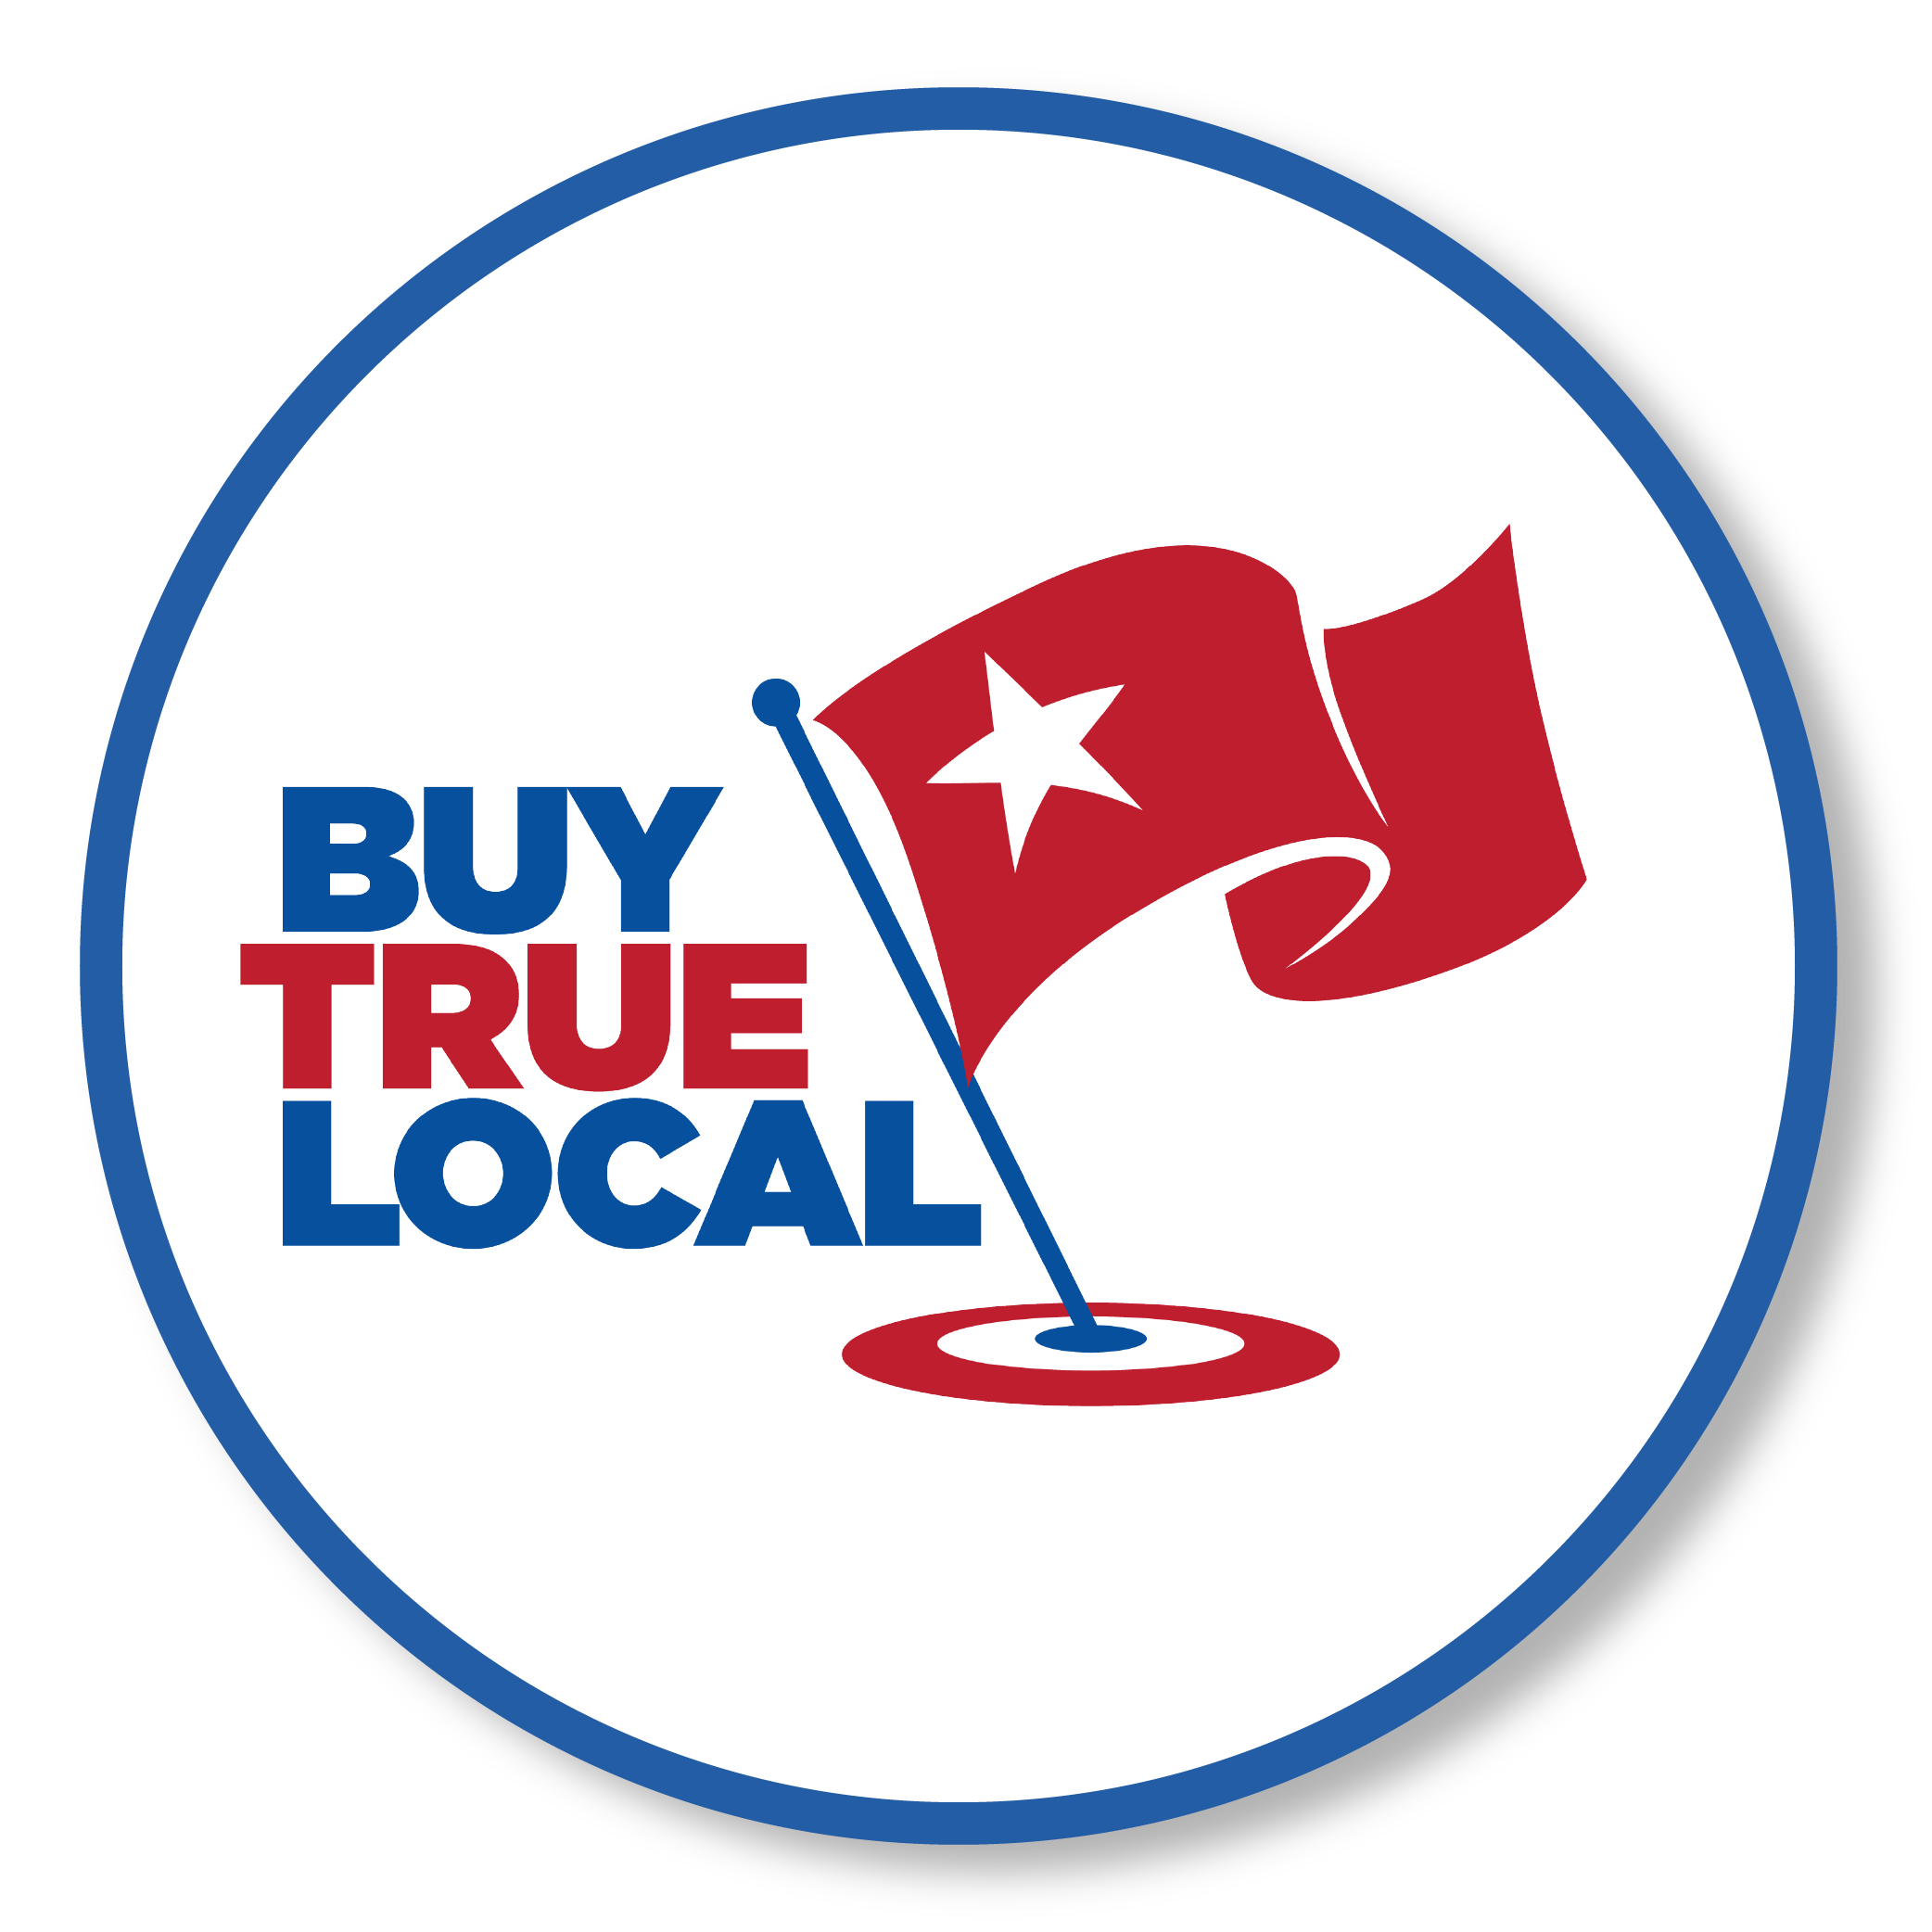 BUY TRUE LOCAL-Circle-Generic